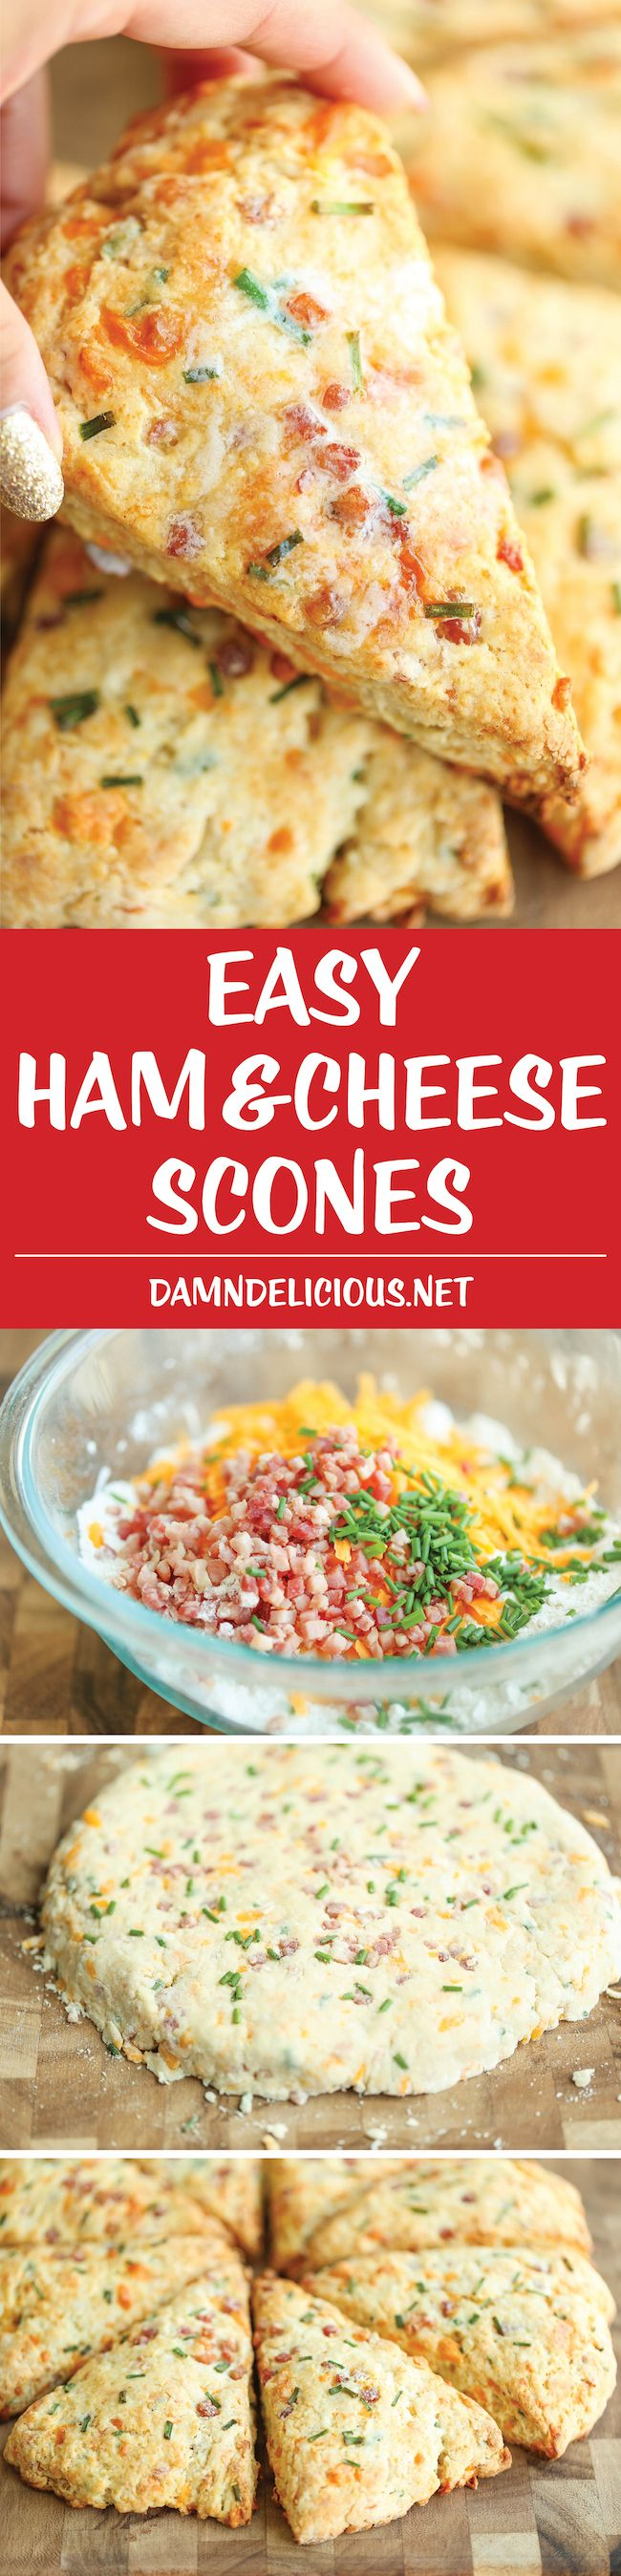 Ham and Cheese Scones - Easy peasy ham and cheddar scones perfect for any time of day - perfect as breakfast, snack-time, appetizer or with a bowl of soup!                                                                                                                                                                                 More